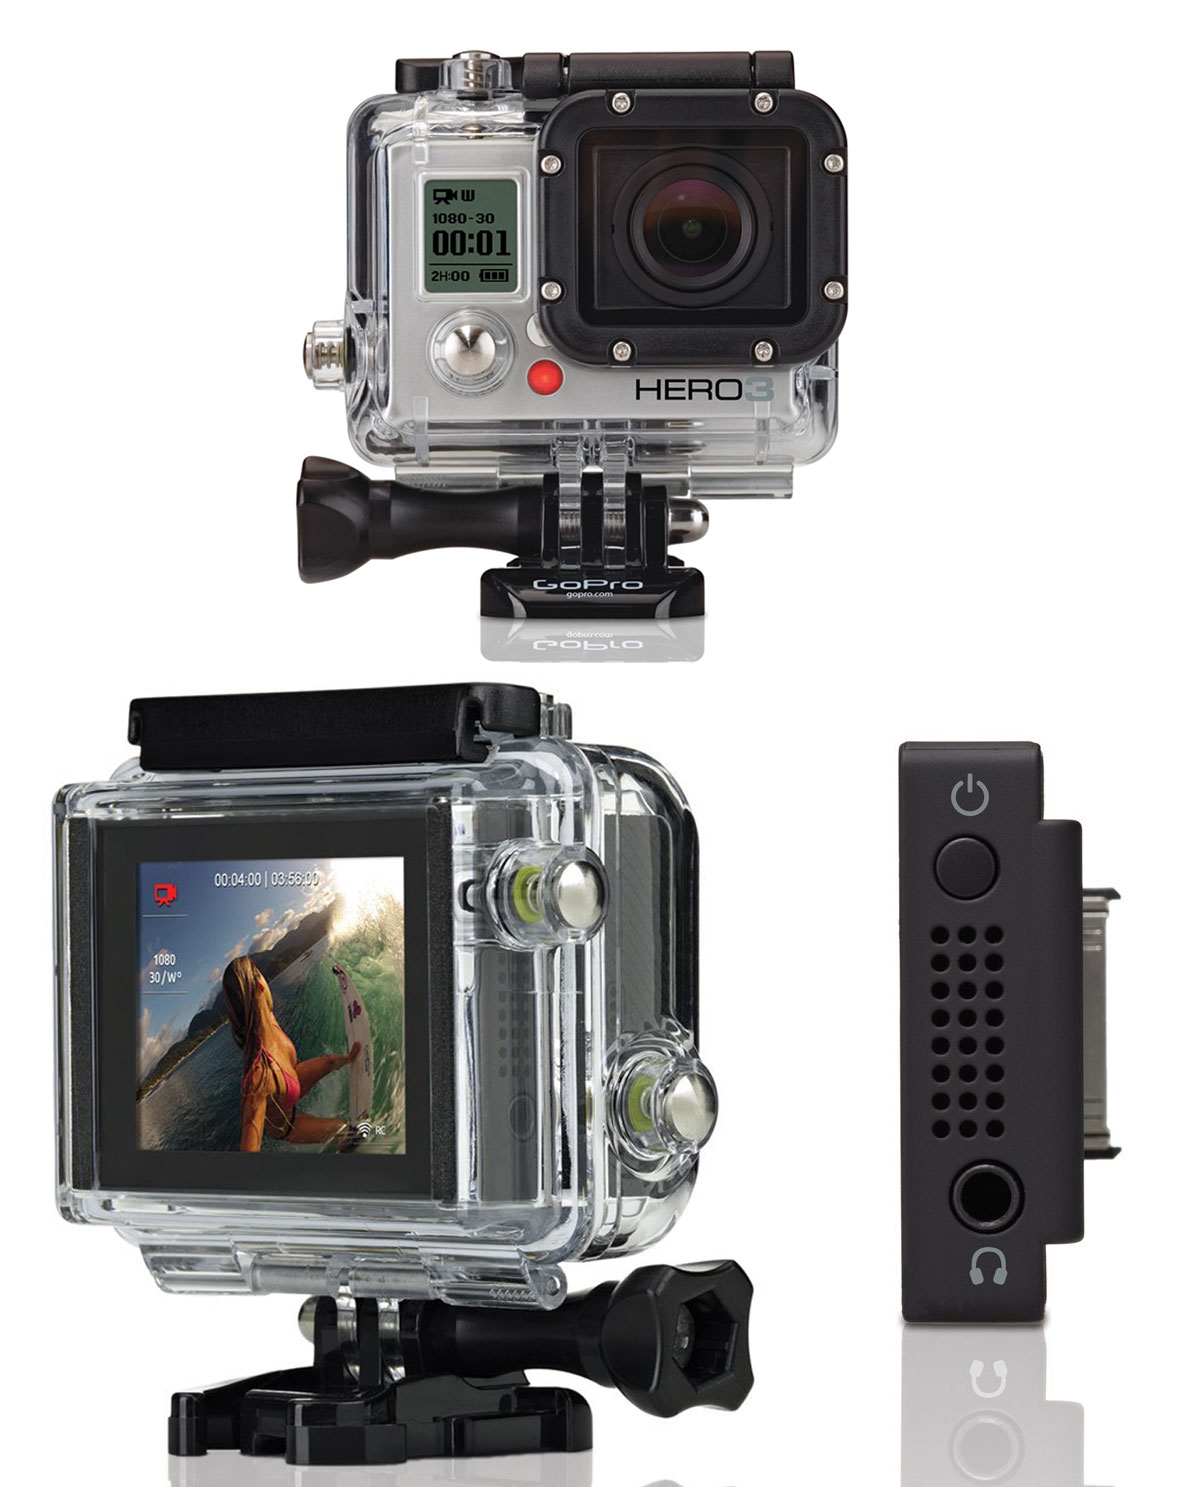 lcd touch bacpac pantalla tactil camara gopro hero 3 y 3. Black Bedroom Furniture Sets. Home Design Ideas